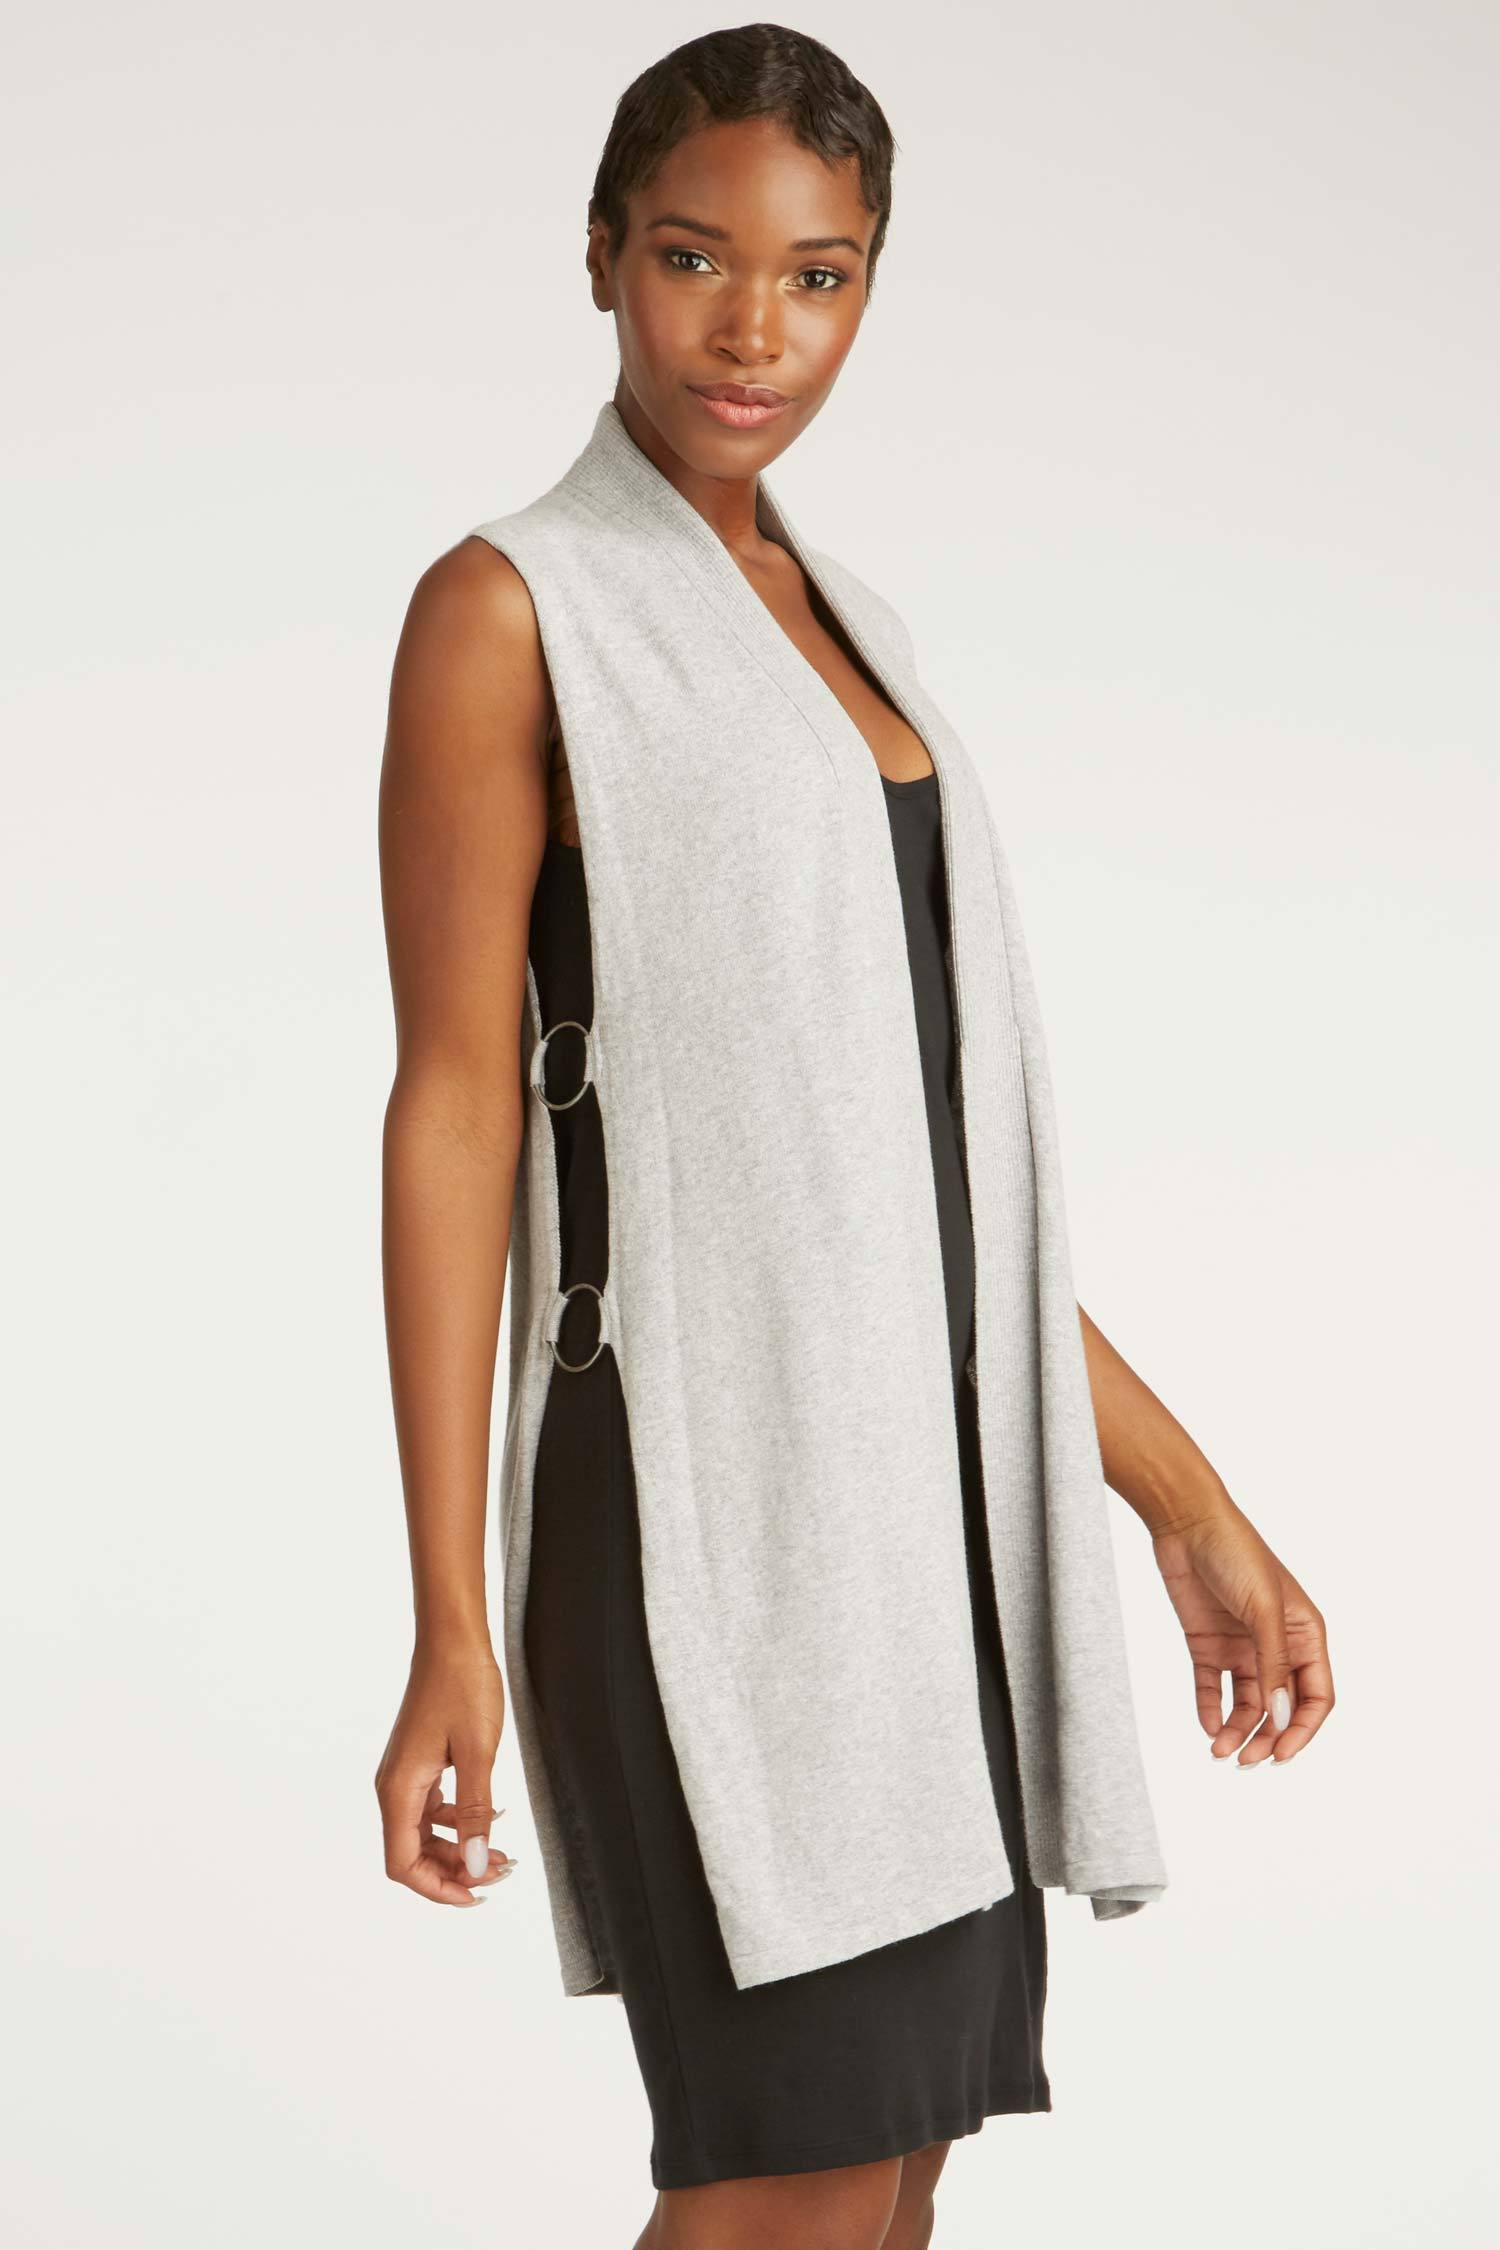 Womens Organic Cotton Vest | Gray Ring Knit Vest | Indigenous